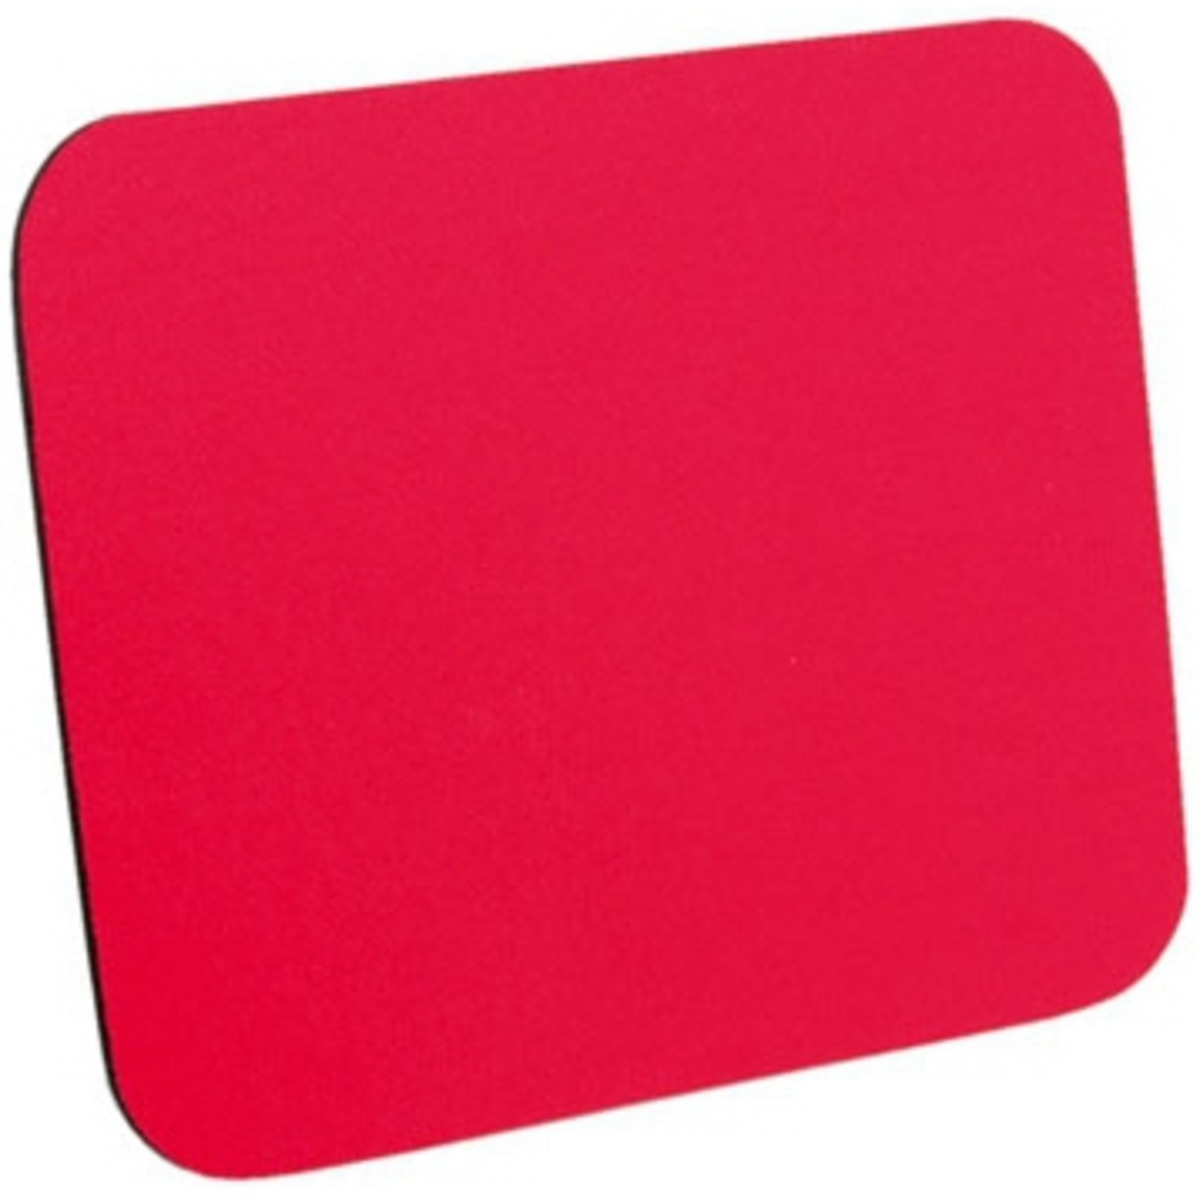 7611990188659-nilox-tappetini-per-mouse-mouse-pad-rosso-rosso